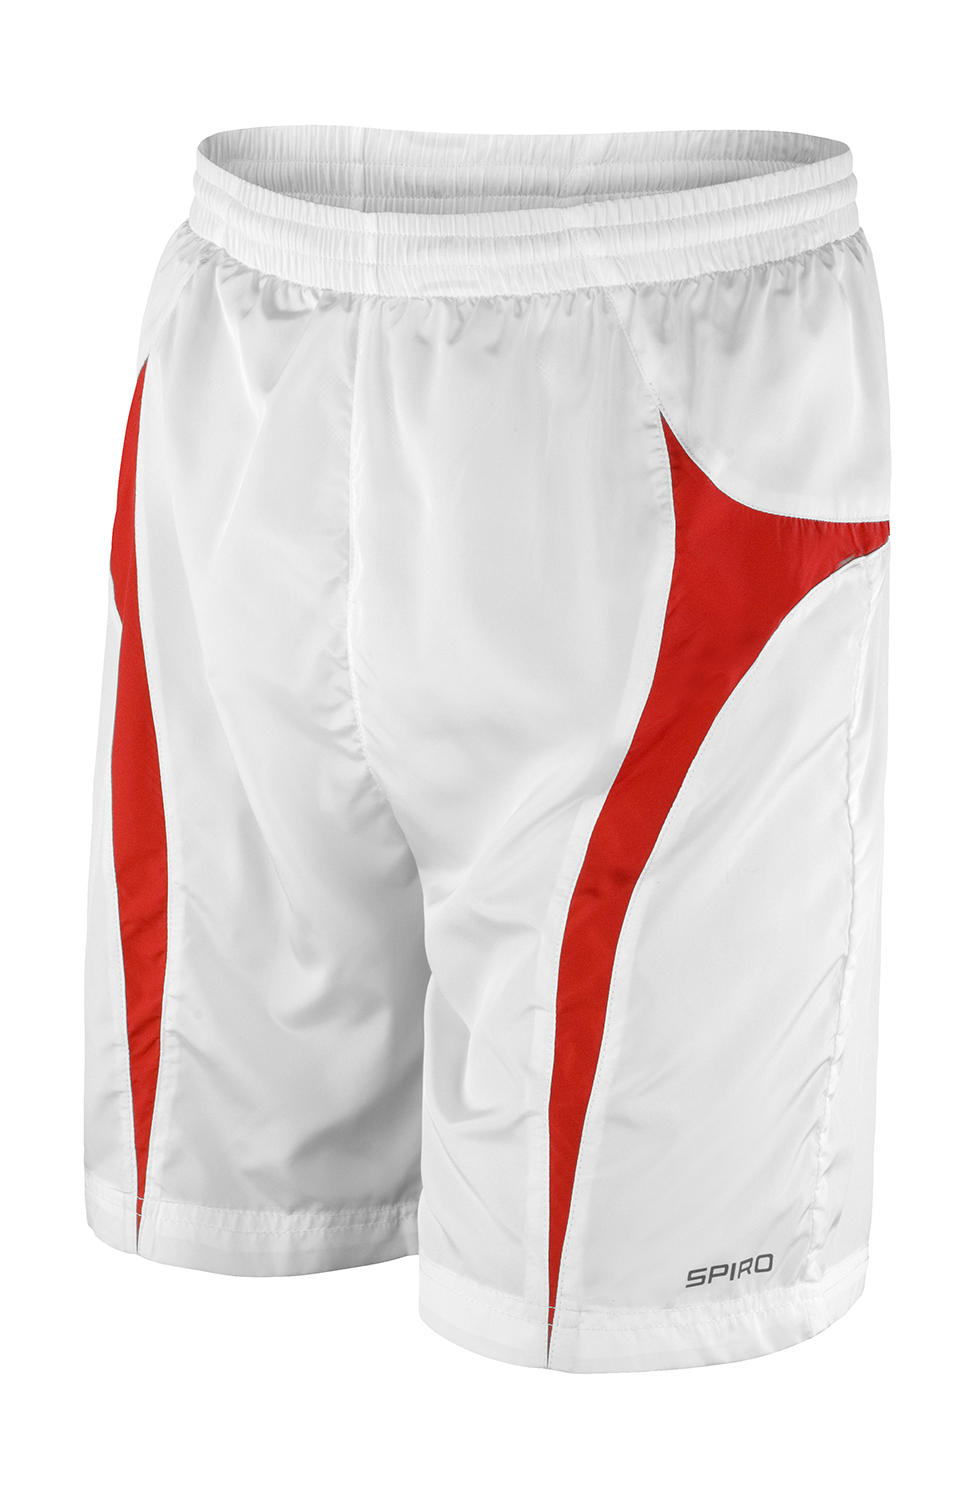 Unisex Micro Lite Team Shorts